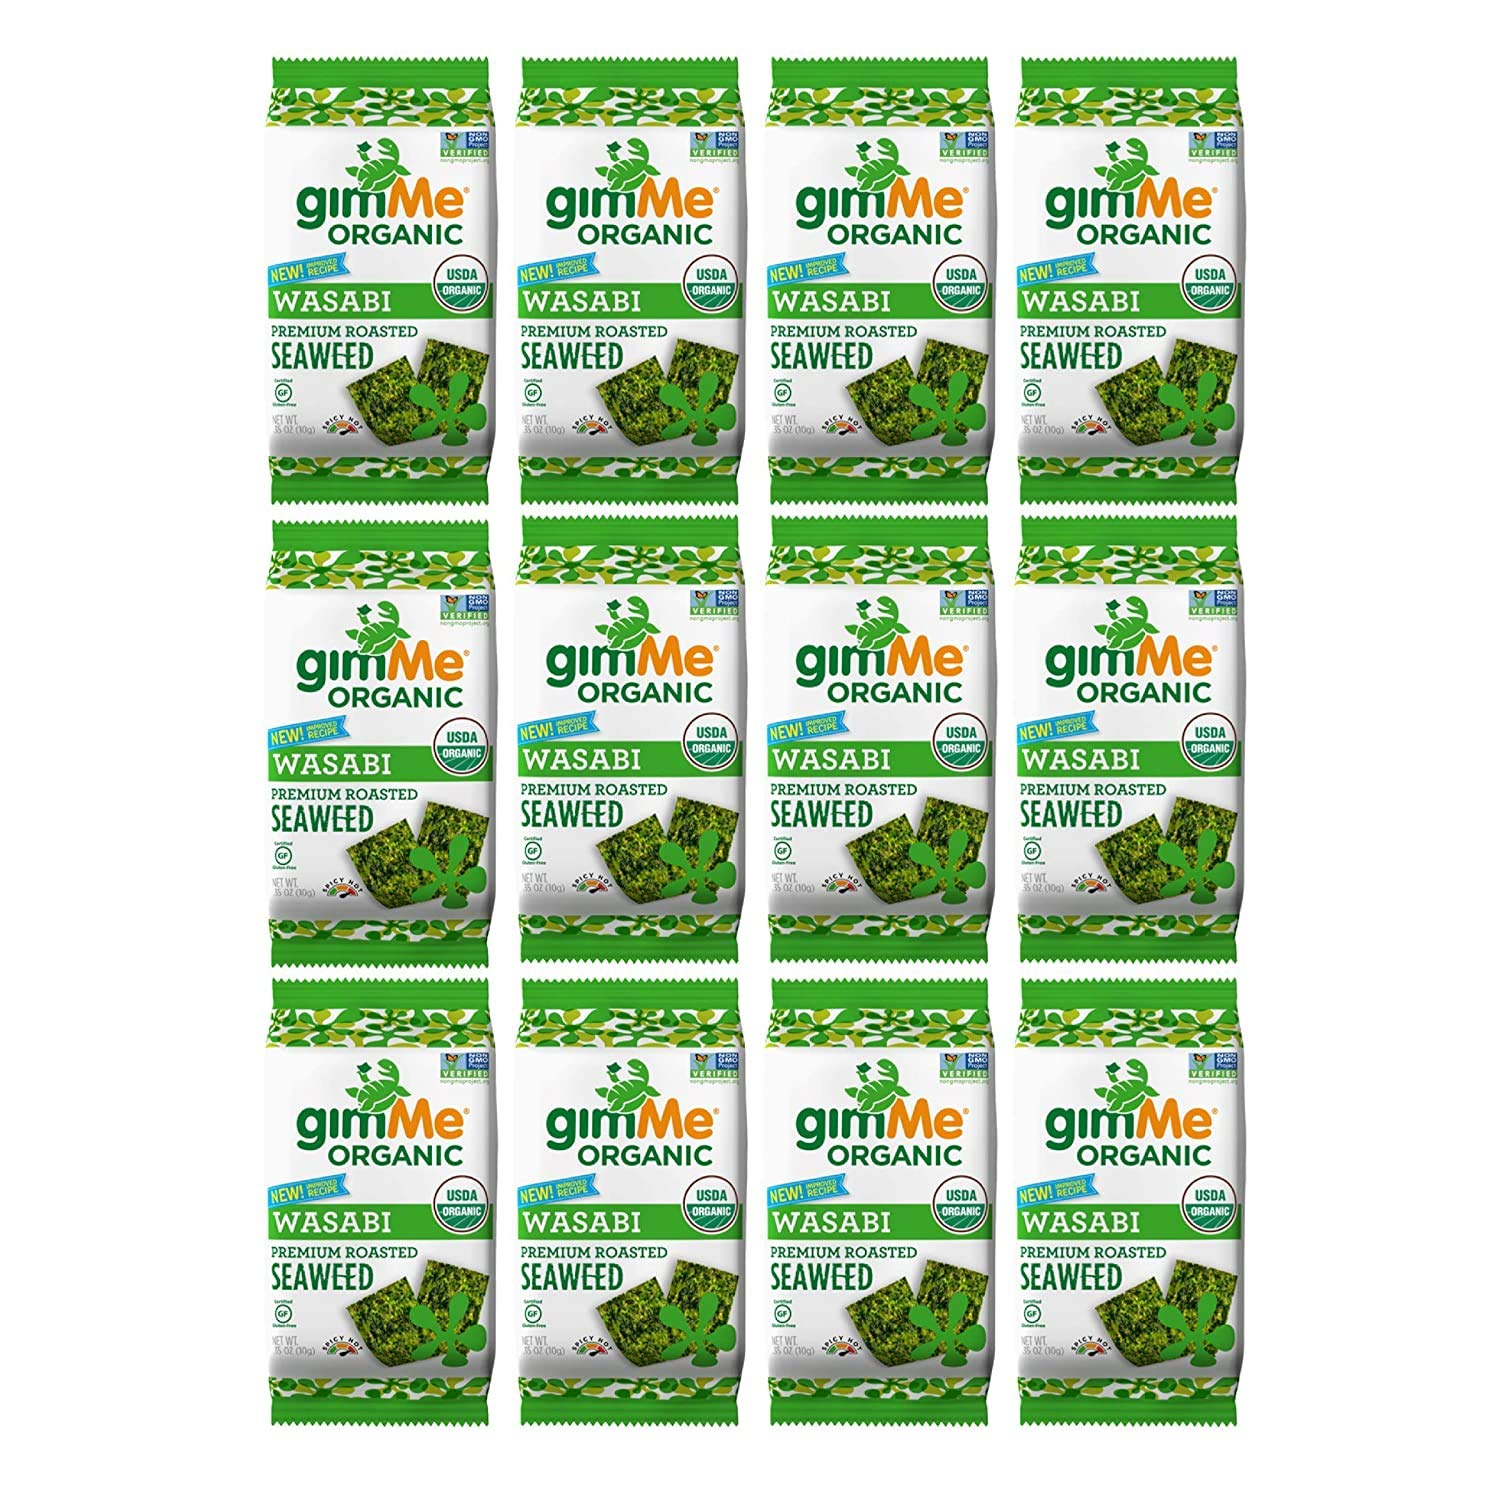 gimMe Organic Roasted Seaweed - Wasabi - 12 Count Sharing Size - Keto, Vegan, Gluten Free - Great Source of Iodine and Omega 3's - Healthy On-The-Go Snack for Kids & Adults